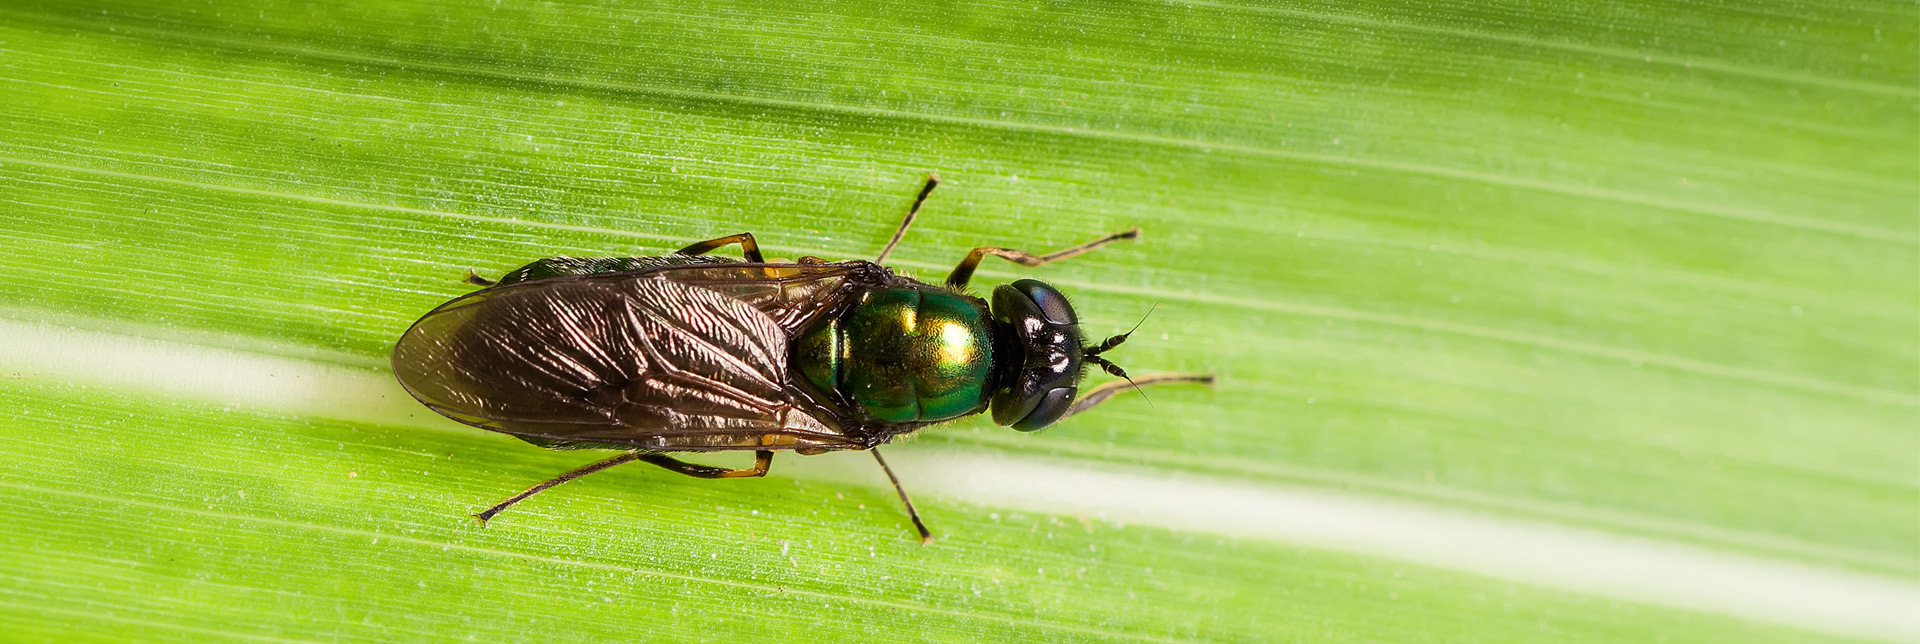 How Flies Make Farming More Sustainable